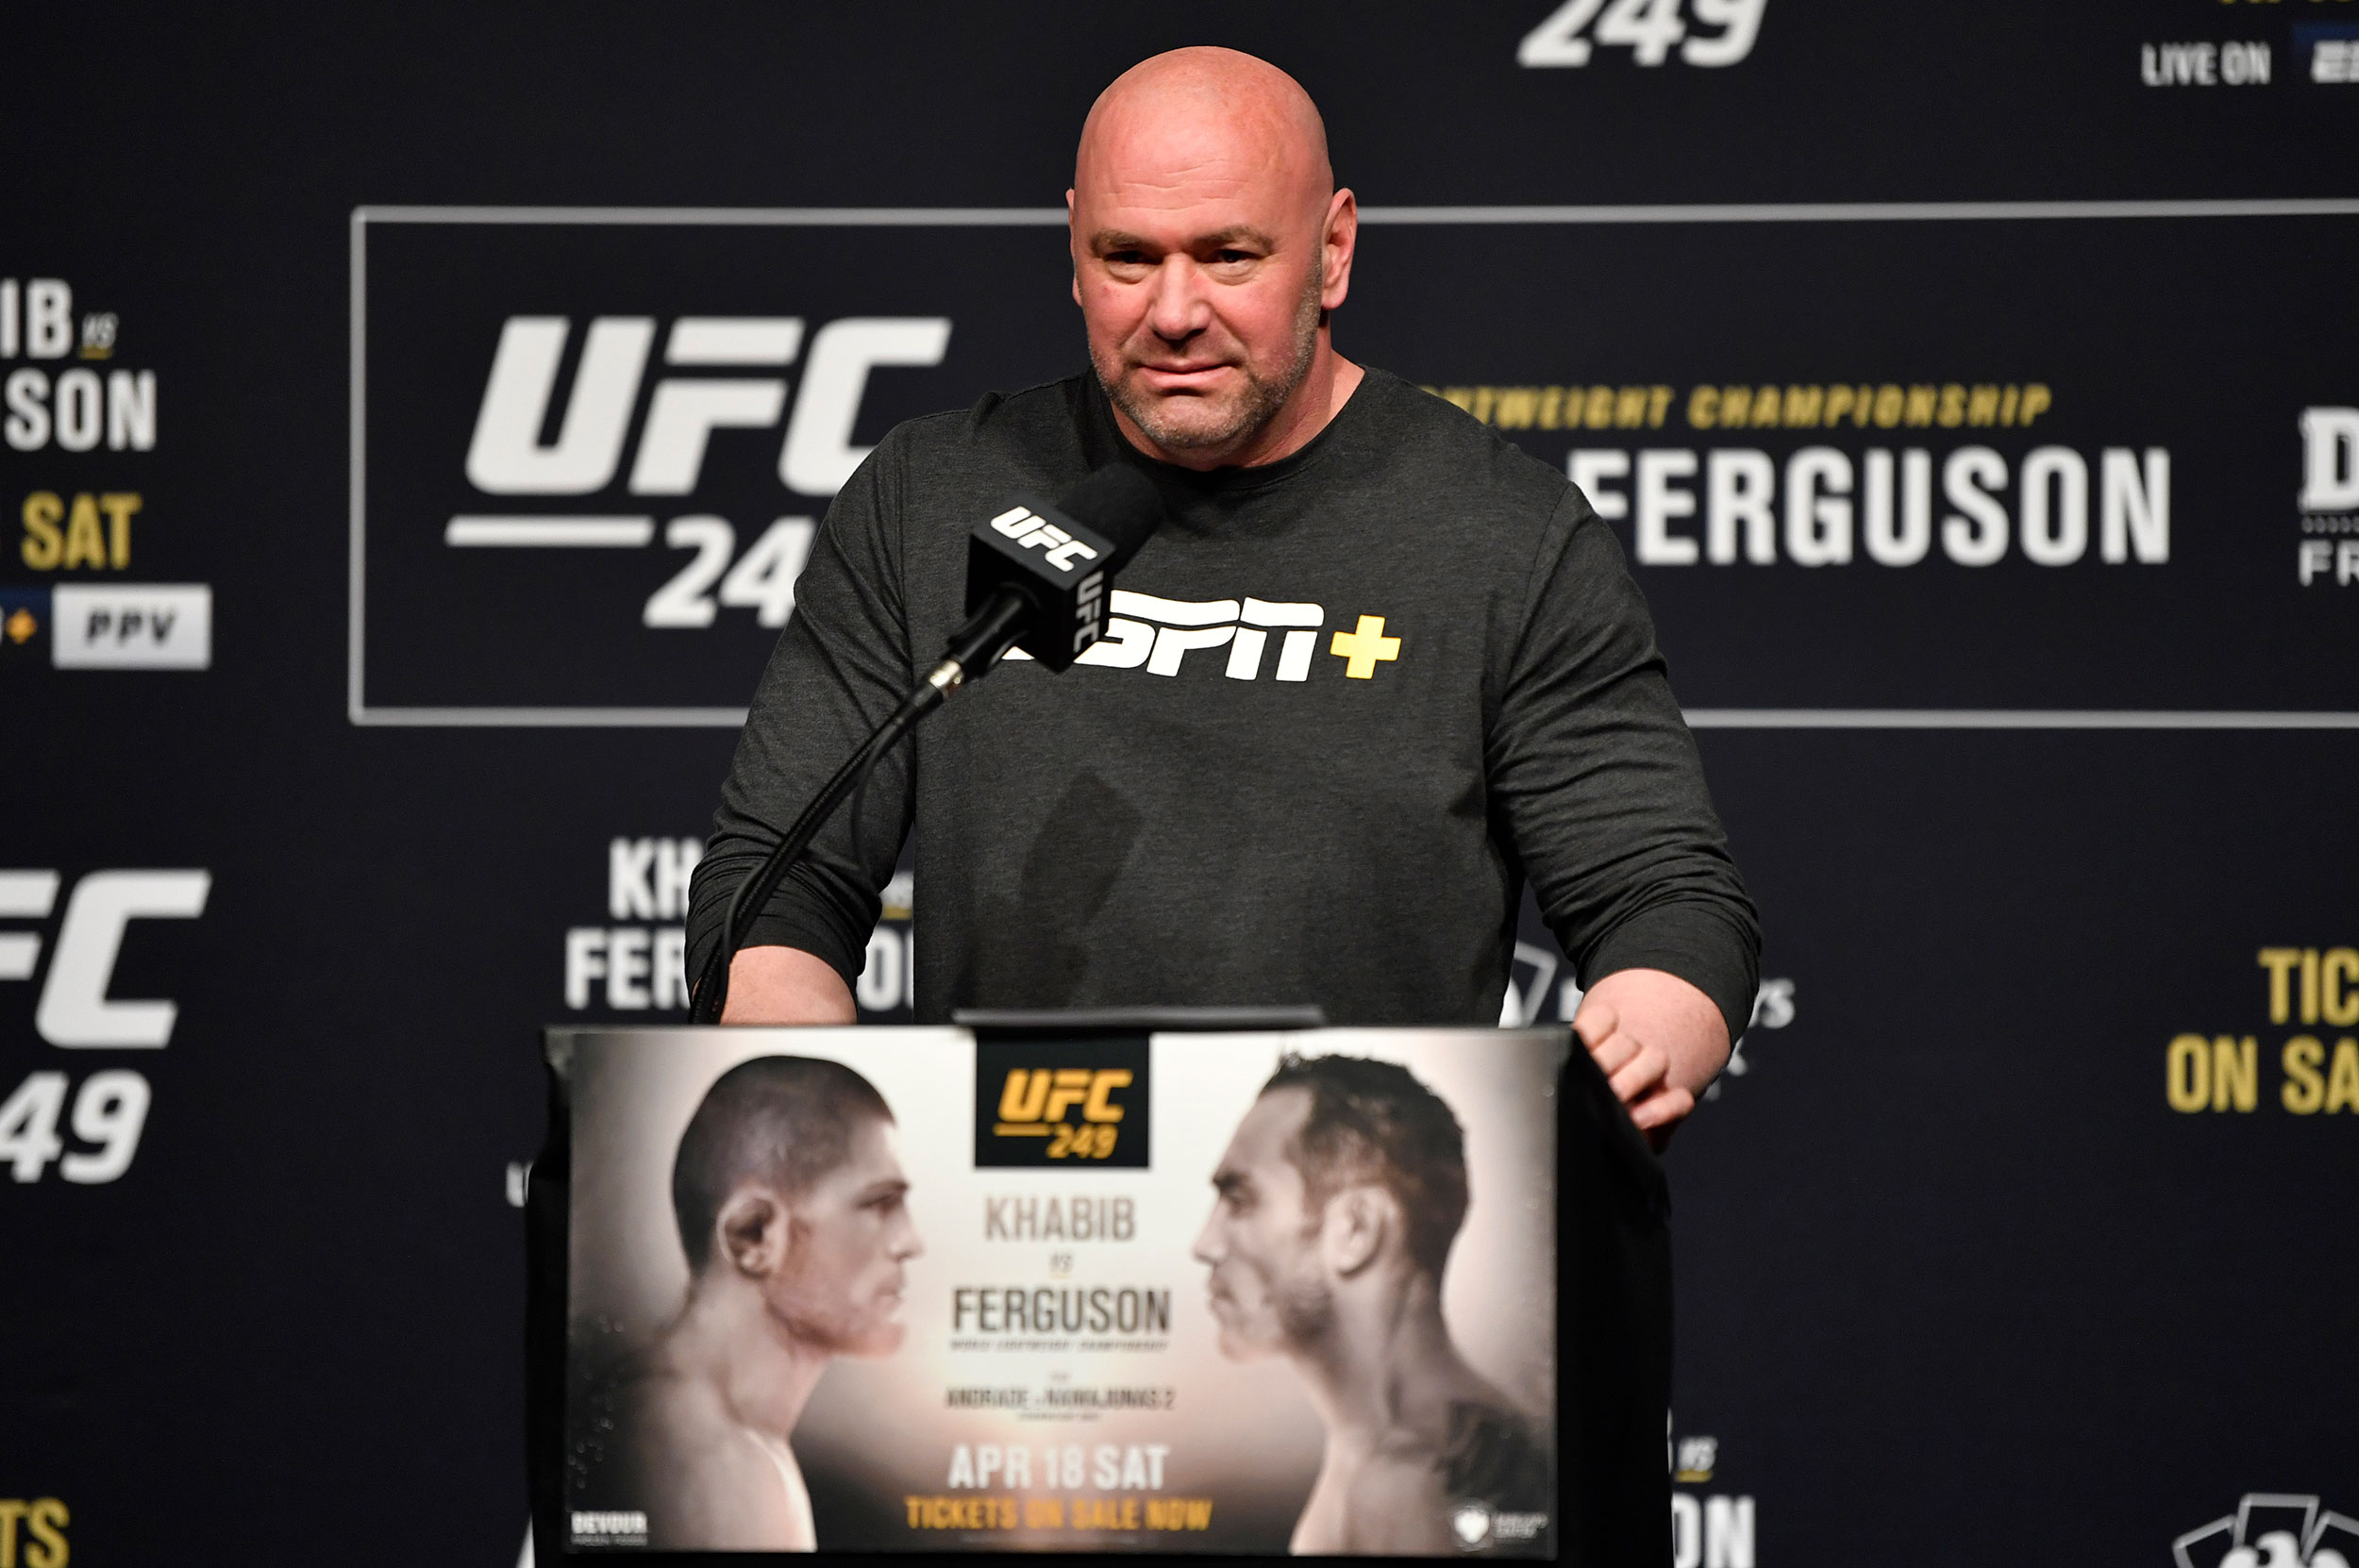 UFC president Dana White speaks during a press conference at T-Mobile Arena in Las Vegas on March 6.